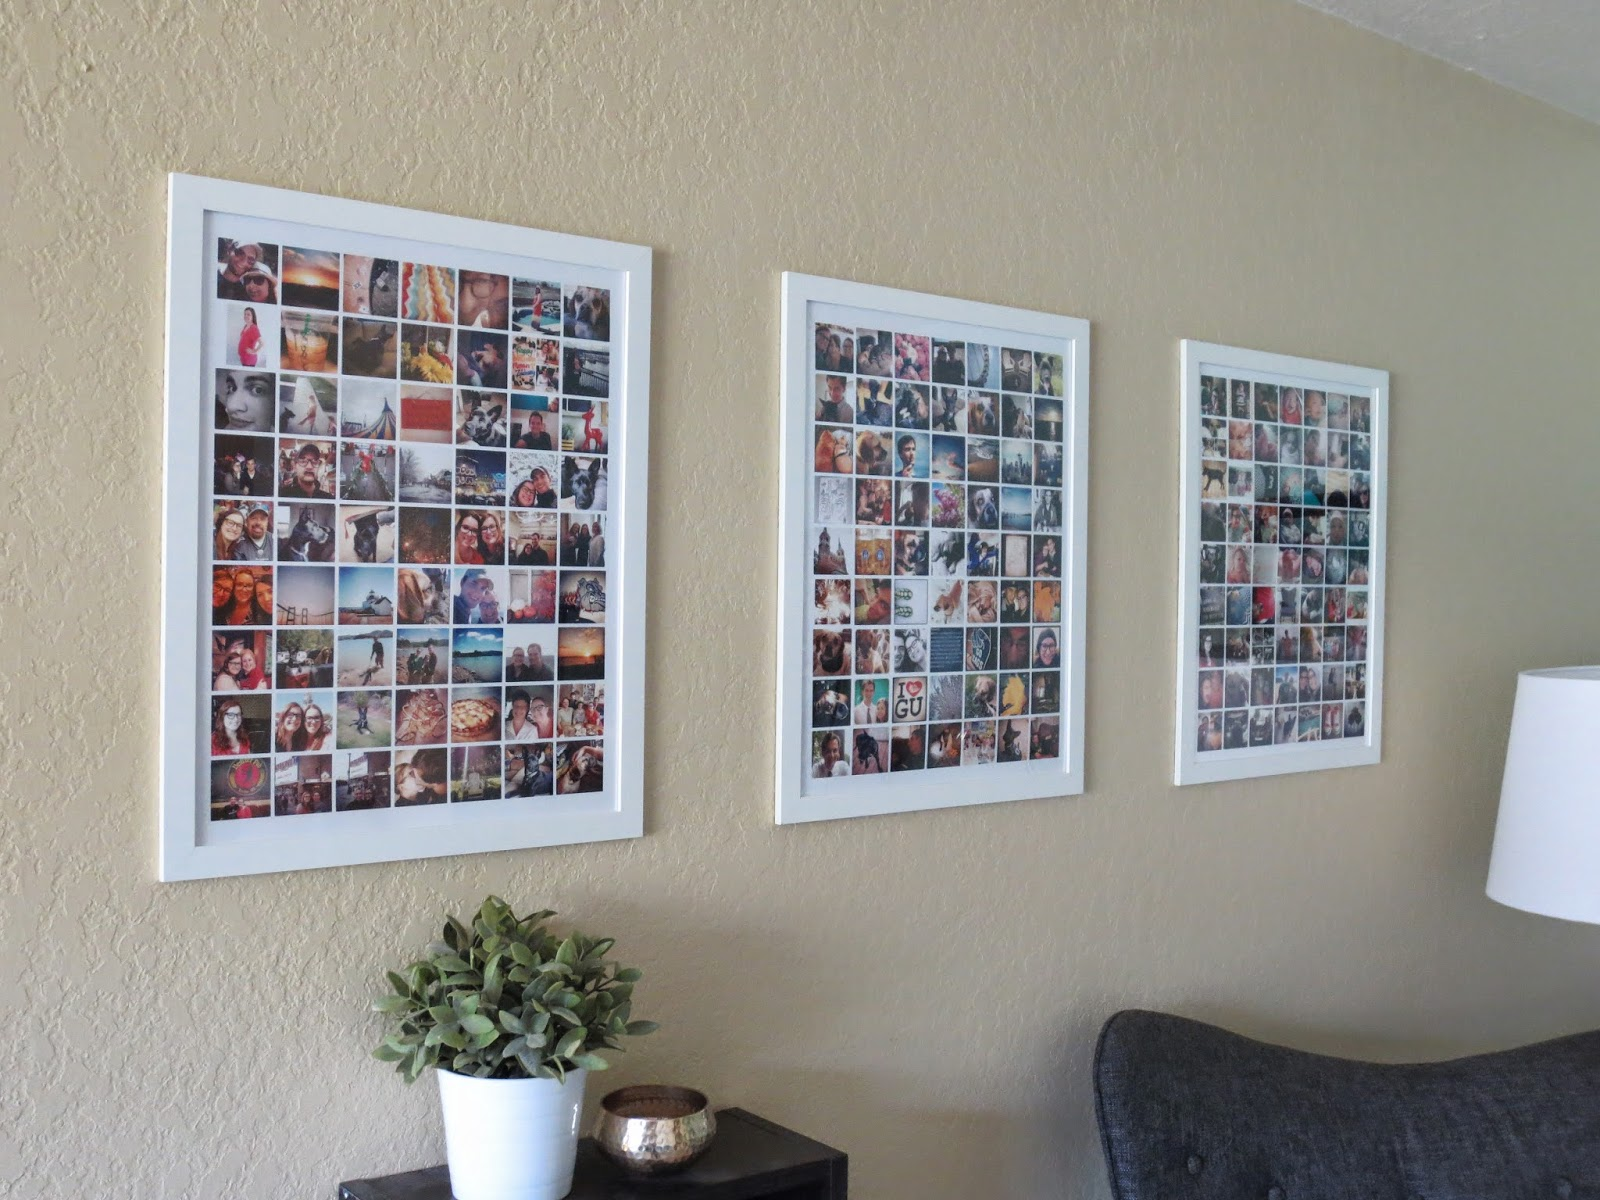 Cheap Wall Canvas Prints Idea That Is One Of My Favorites And Is So Easy To Make And Cheap Too